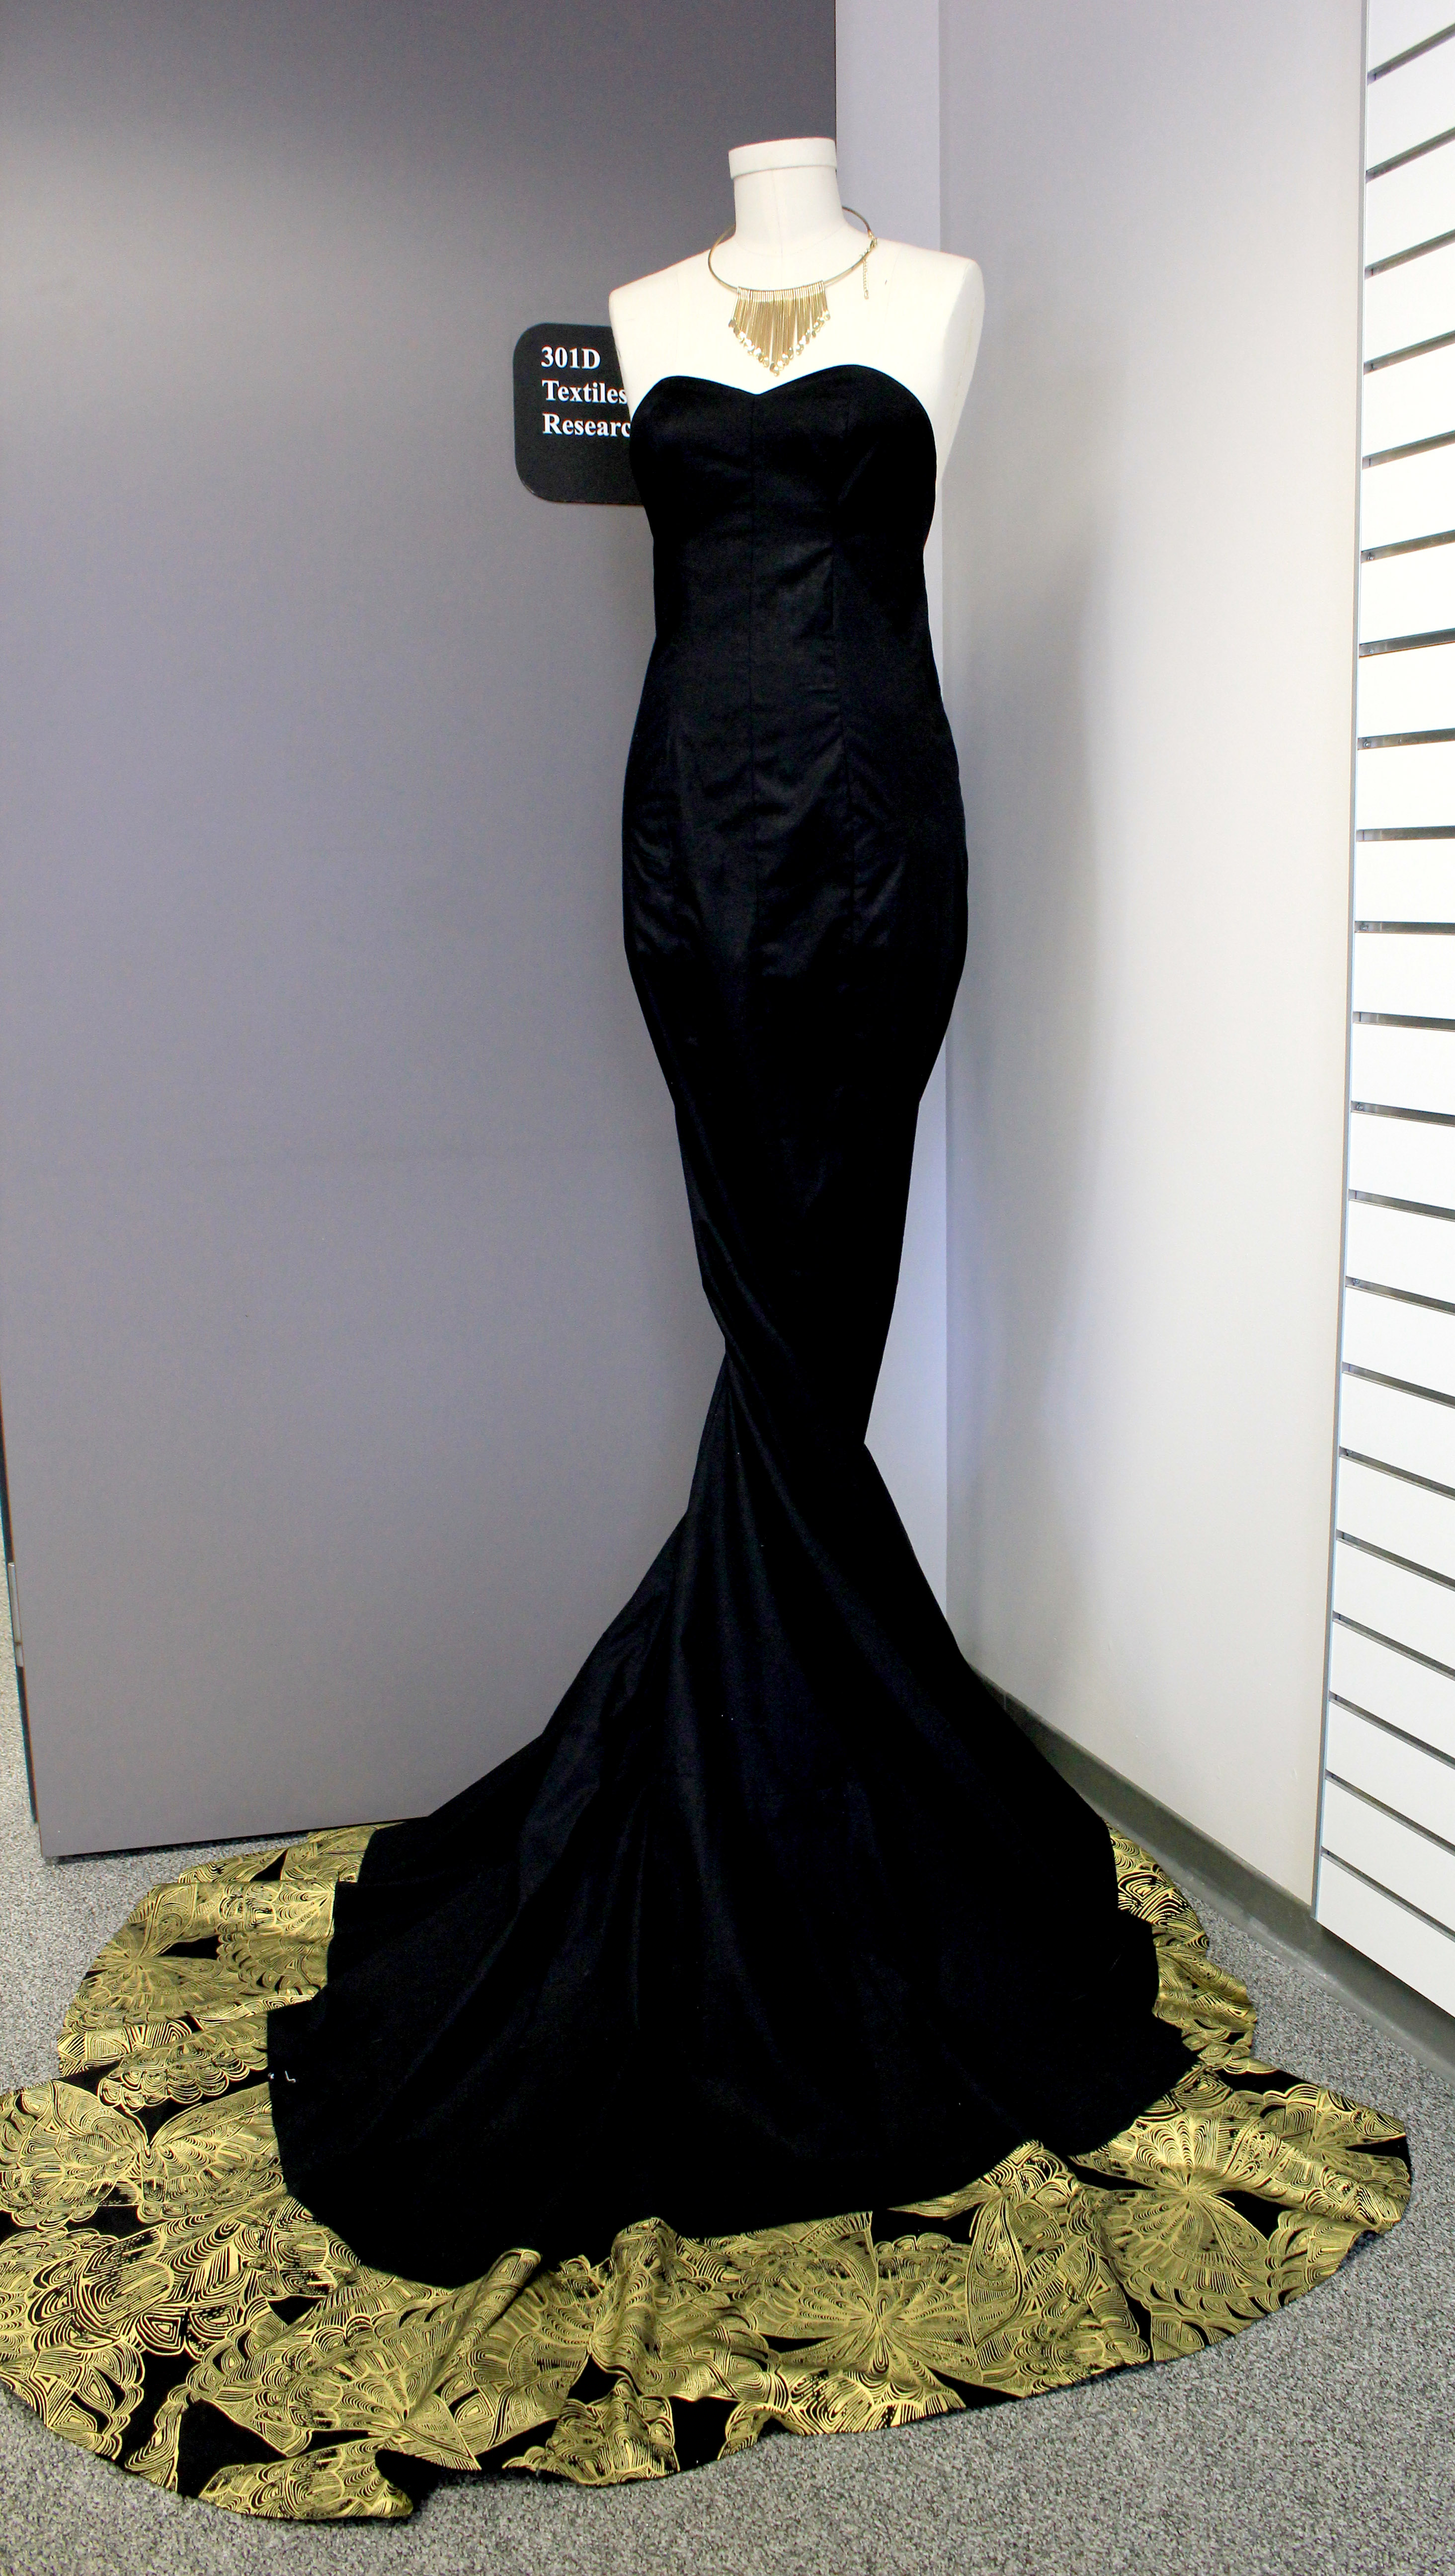 Recycle Evening Gown Sewing Projects Burdastyle Com